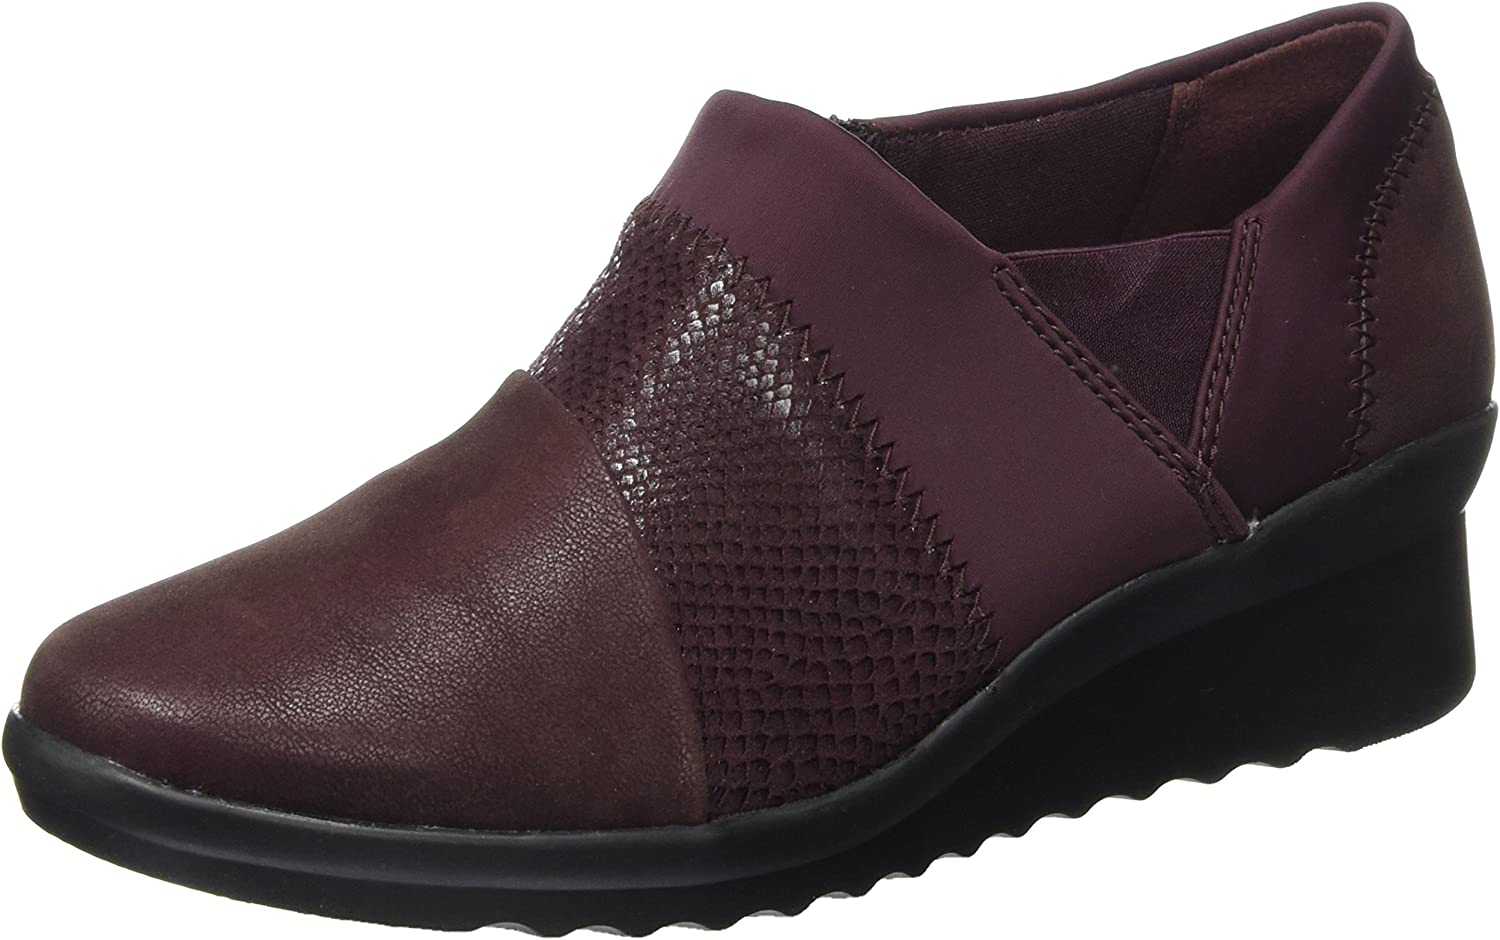 Clarks Womens shoes Caddell Denali Burgundy